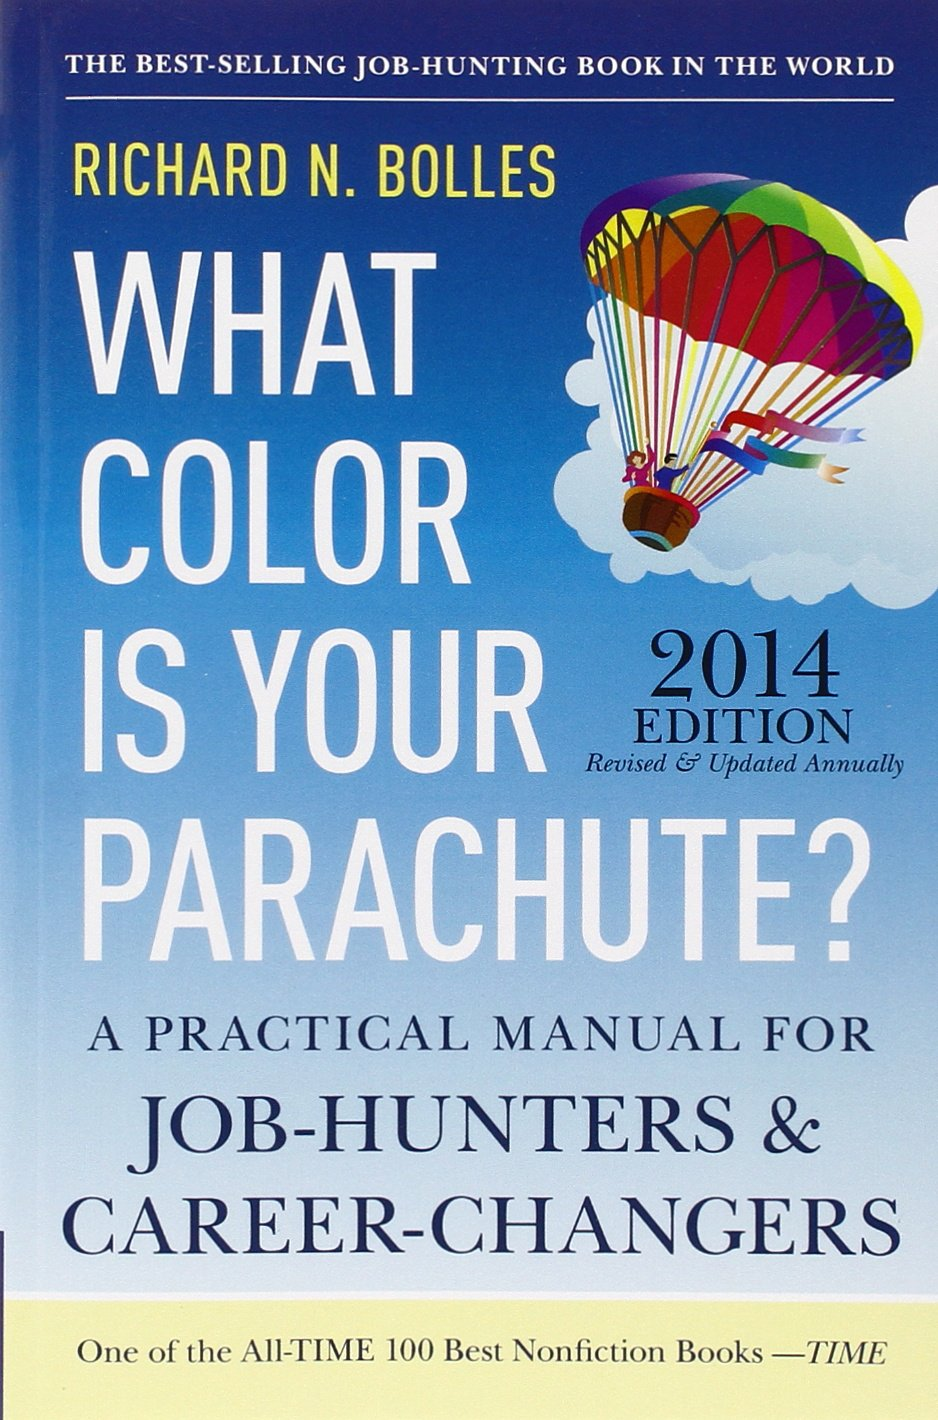 what color is your parachute 2014 a practical manual for job 2014 a practical manual for job hunters and career changers richard n bolles 9781607743620 amazon com books